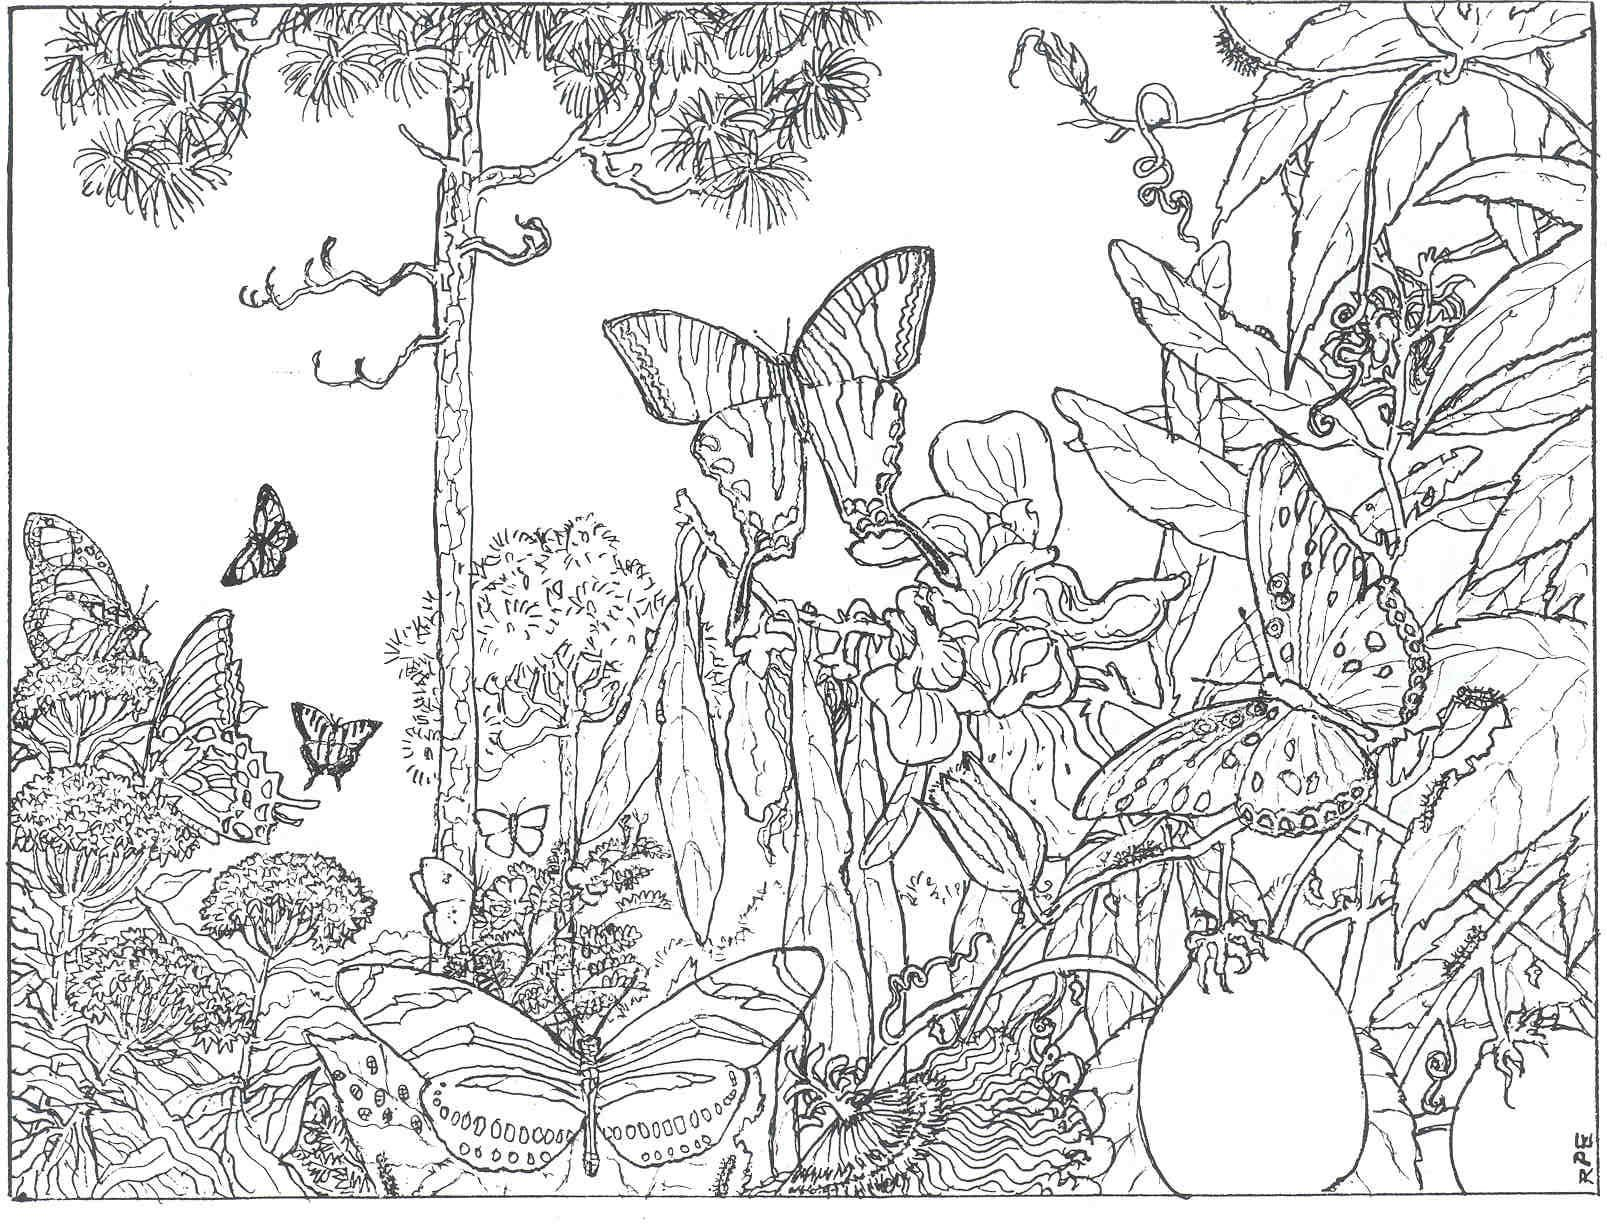 Coloring Pages For Adults Best Coloring Pages For Kids Butterfly Coloring Page Detailed Coloring Pages Enchanted Forest Coloring Book